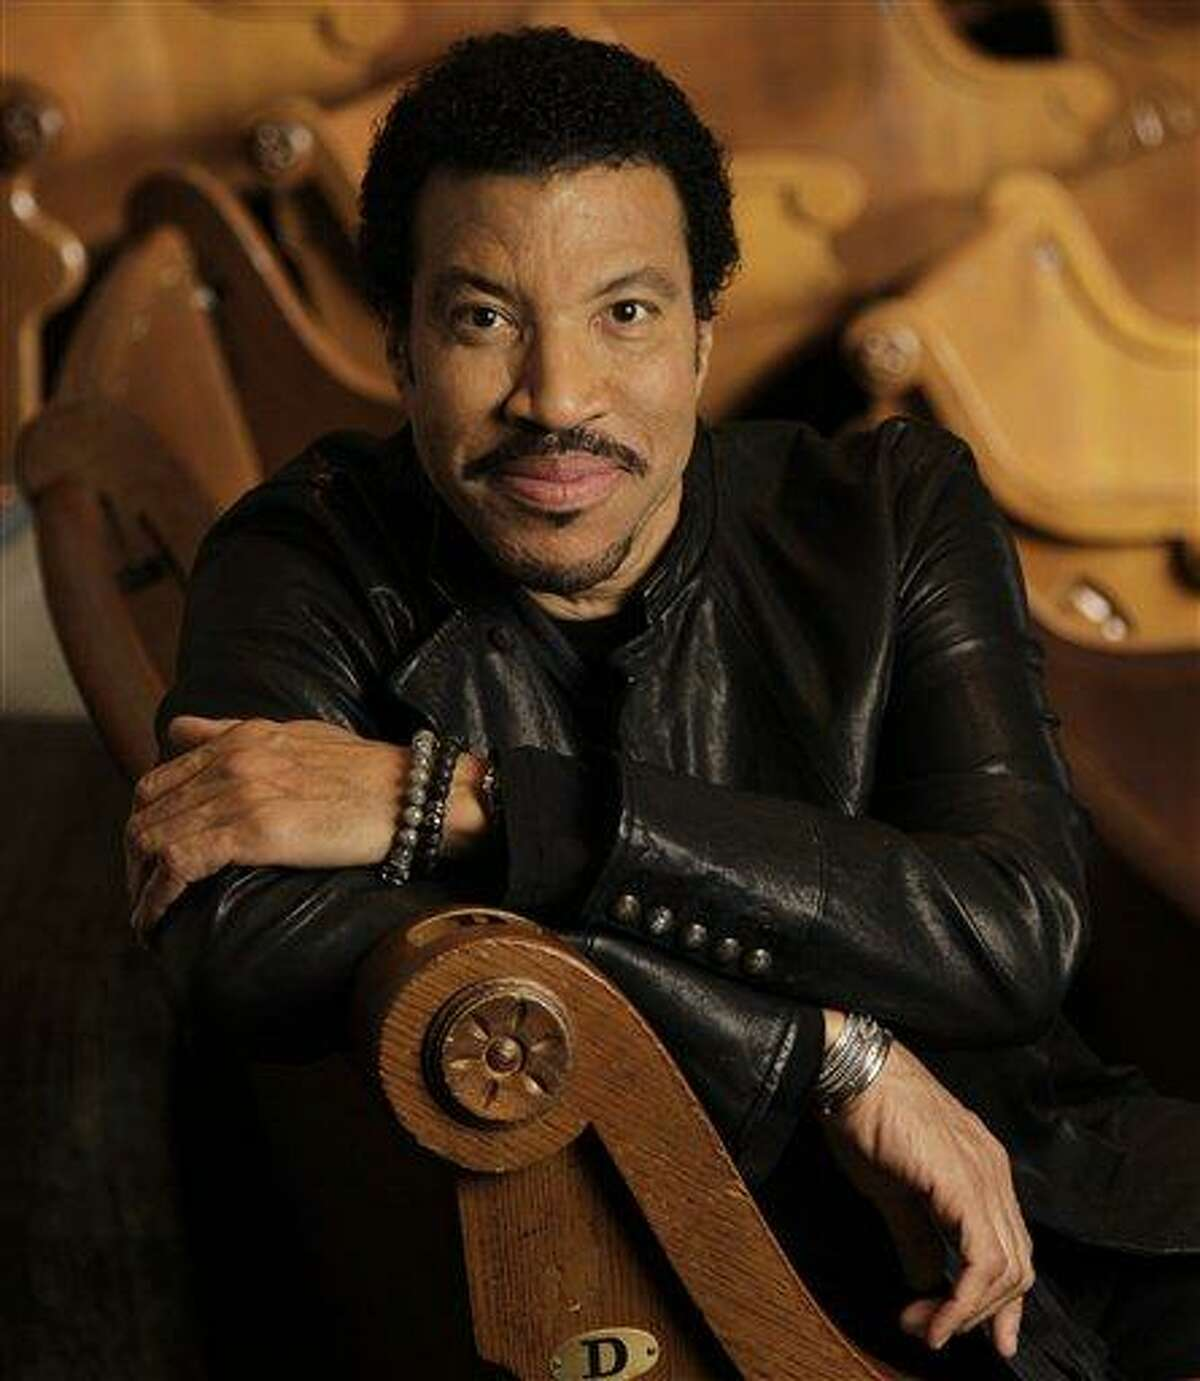 """This Jan. 11, 2012 photo shows Lionel Richie in Nashville, Tenn. Richie and Pamela Anderson owe the government money. California tax authorities have put Anderson on the latest list of the state's biggest income-tax delinquents. The Franchise Tax Board said the former """"Baywatch"""" star owes $524,241 in state income taxes. Meanwhile, E! Online reports that Richie, a music legend, owes the federal government $1.1 million in unpaid taxes and that a lien has been issued warning that the singers' assets may be seized if he doesn't pay up in a timely manner. (AP Photo/Mark Humphrey)"""